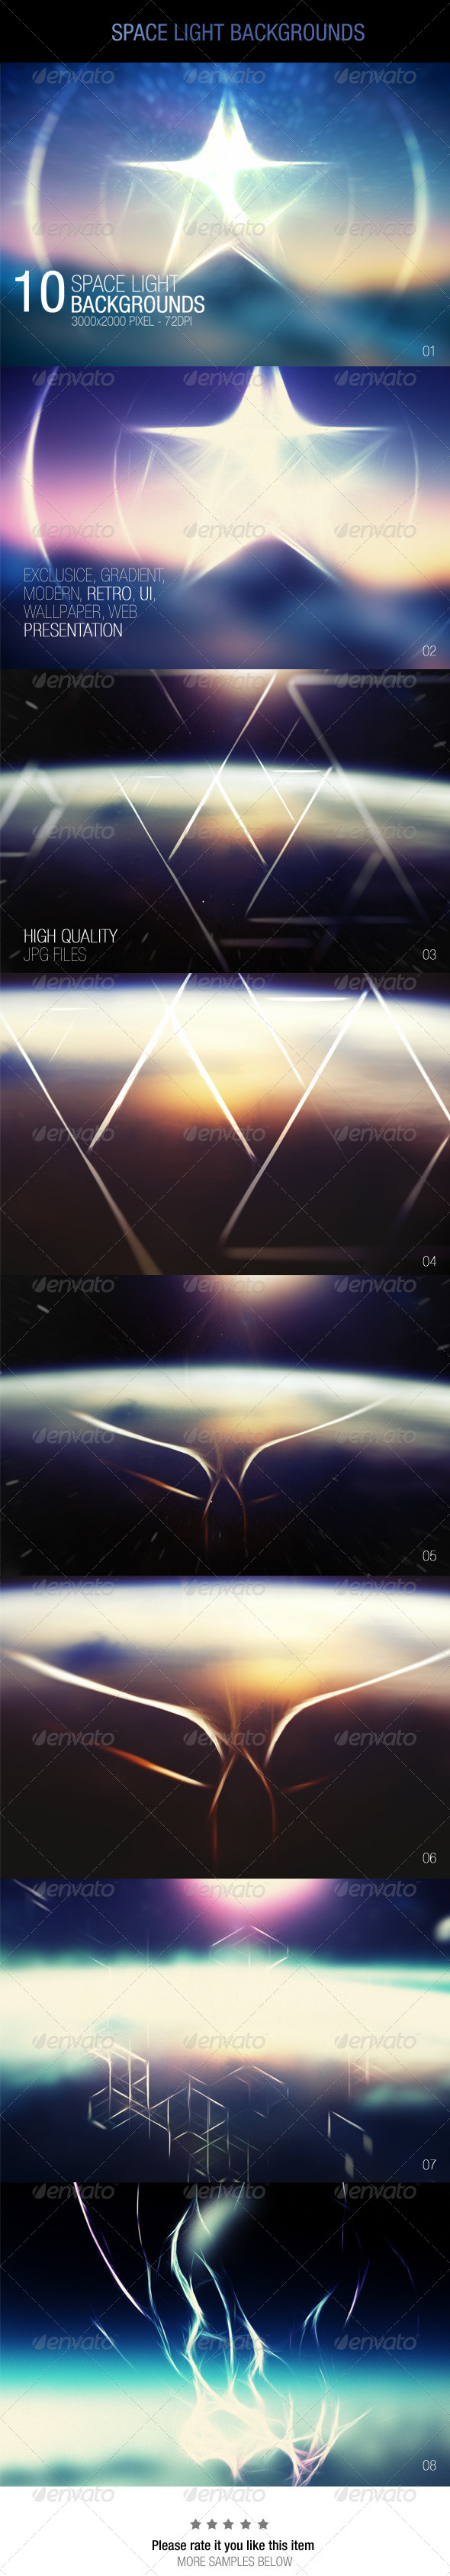 GraphicRiver Space Light Backgrounds 7585018